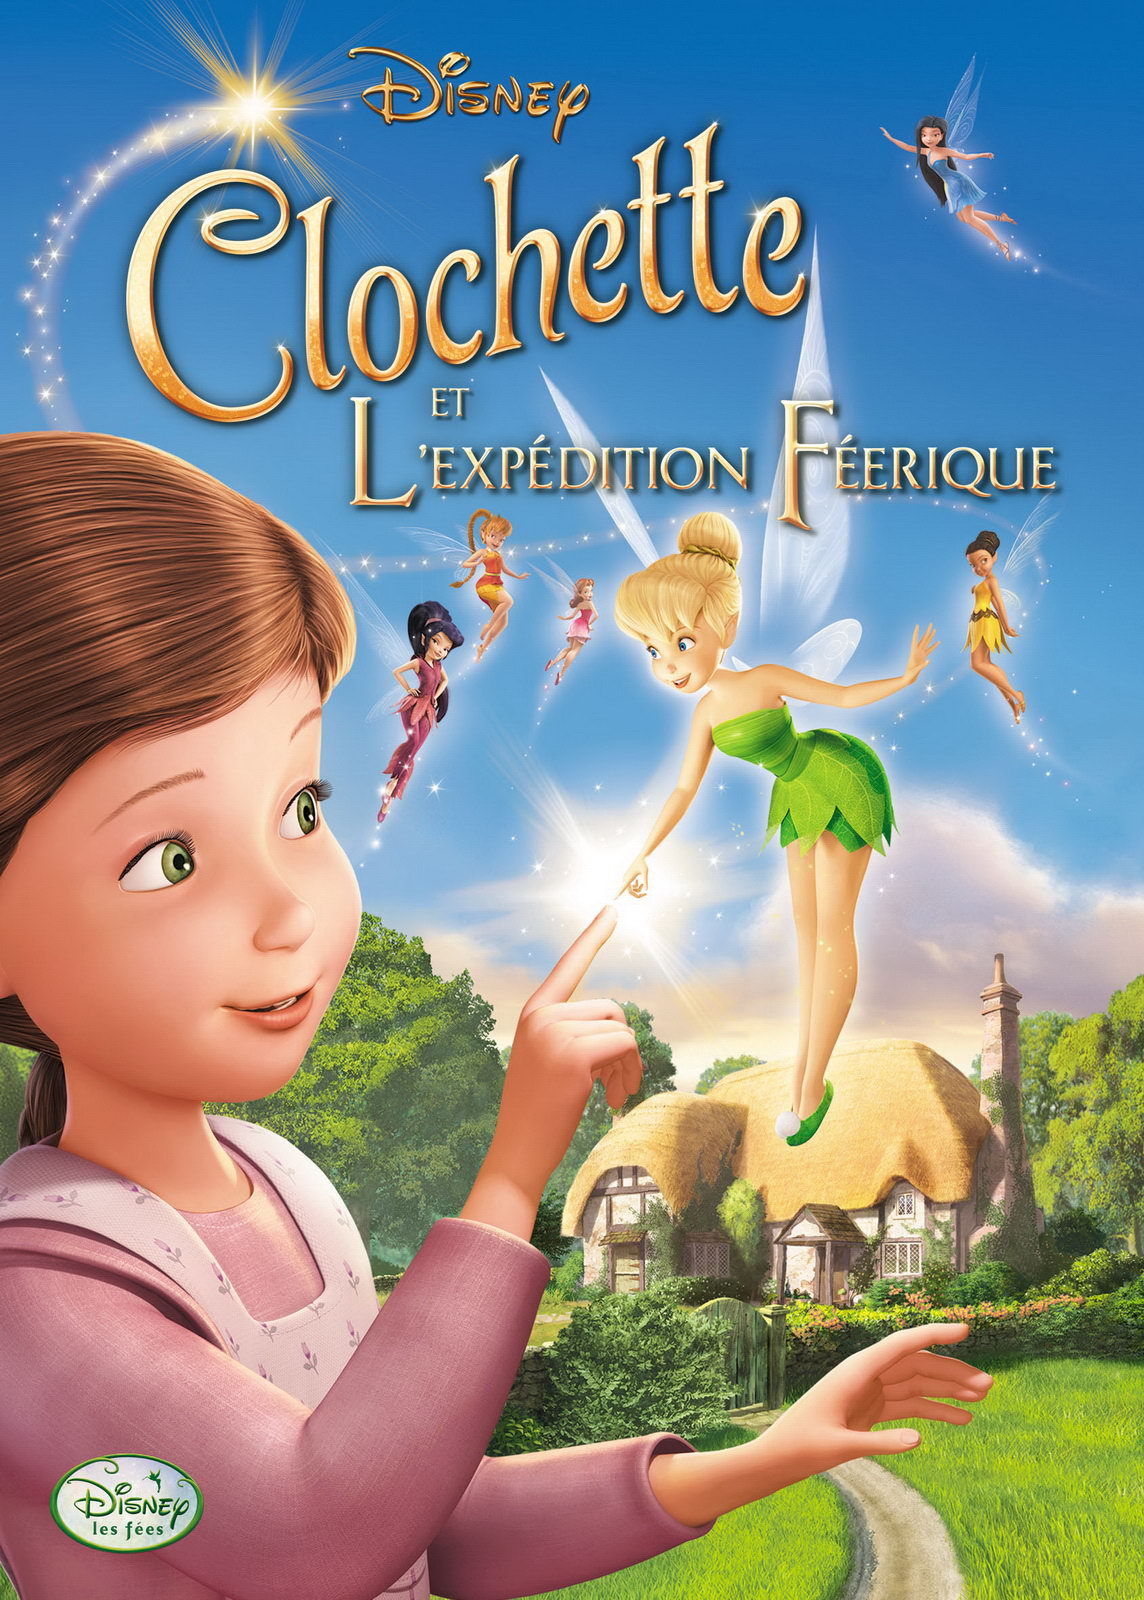 walt disney animation disneytoon studios affiche clochette expedition feerique poster tinker bell great fairy rescue